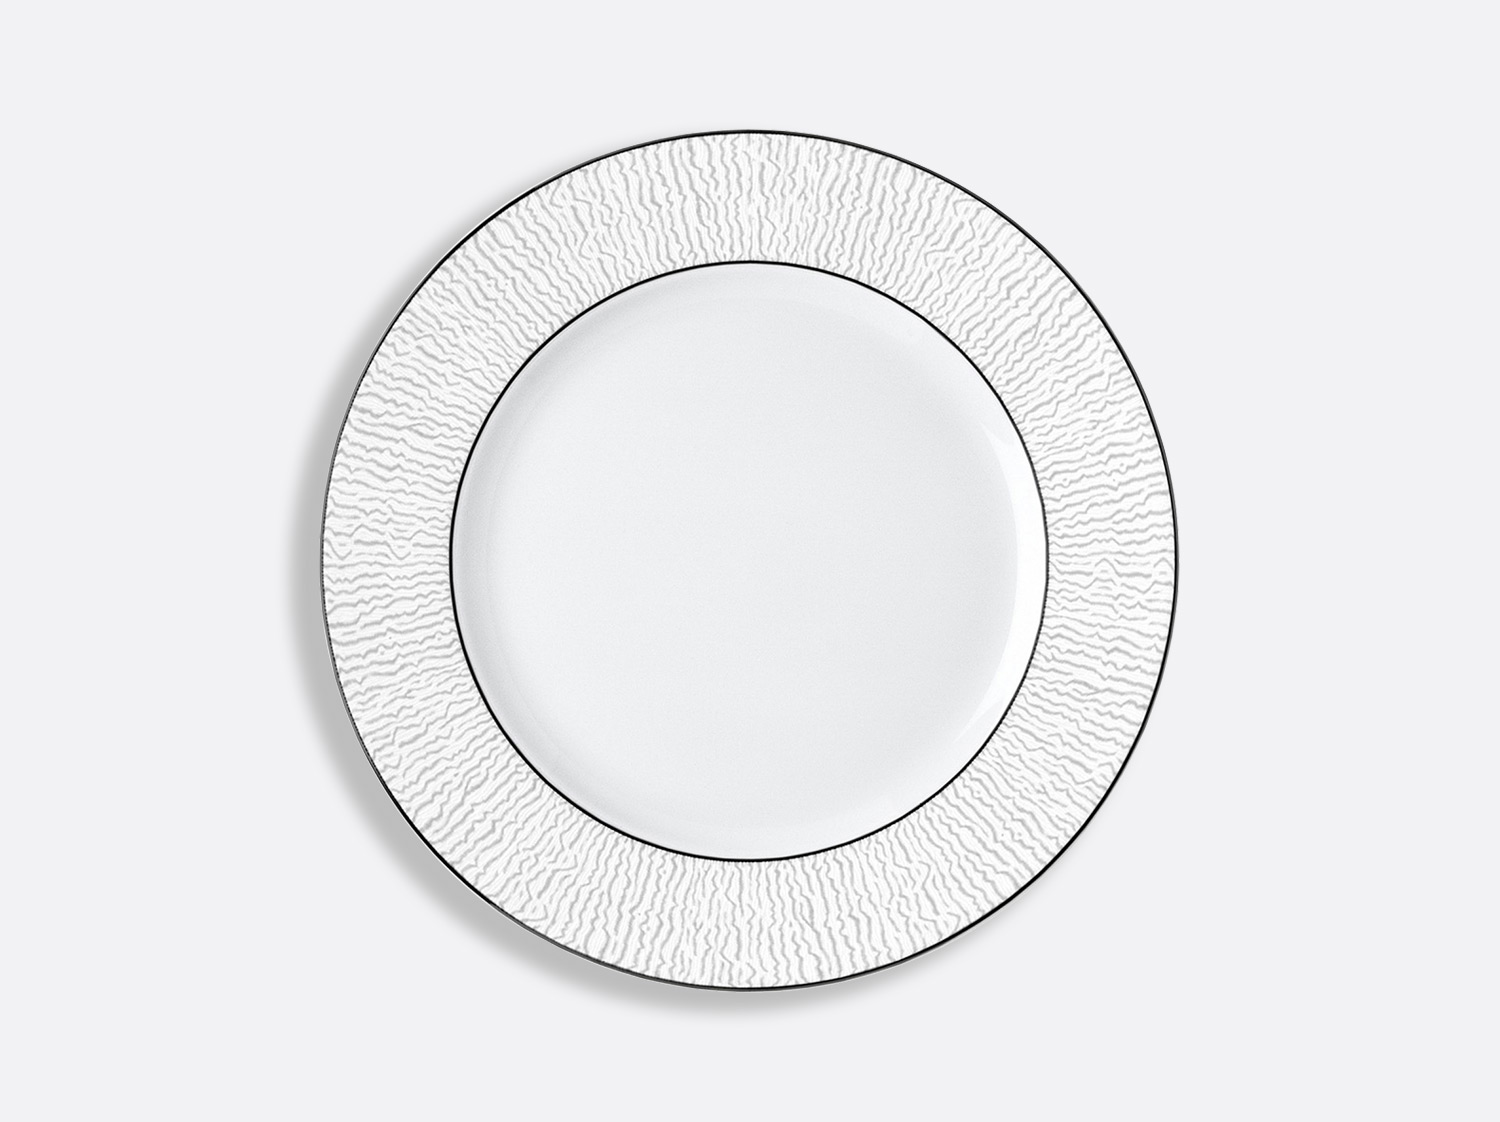 Assiette à dîner 26 cm en porcelaine de la collection Dune Bernardaud